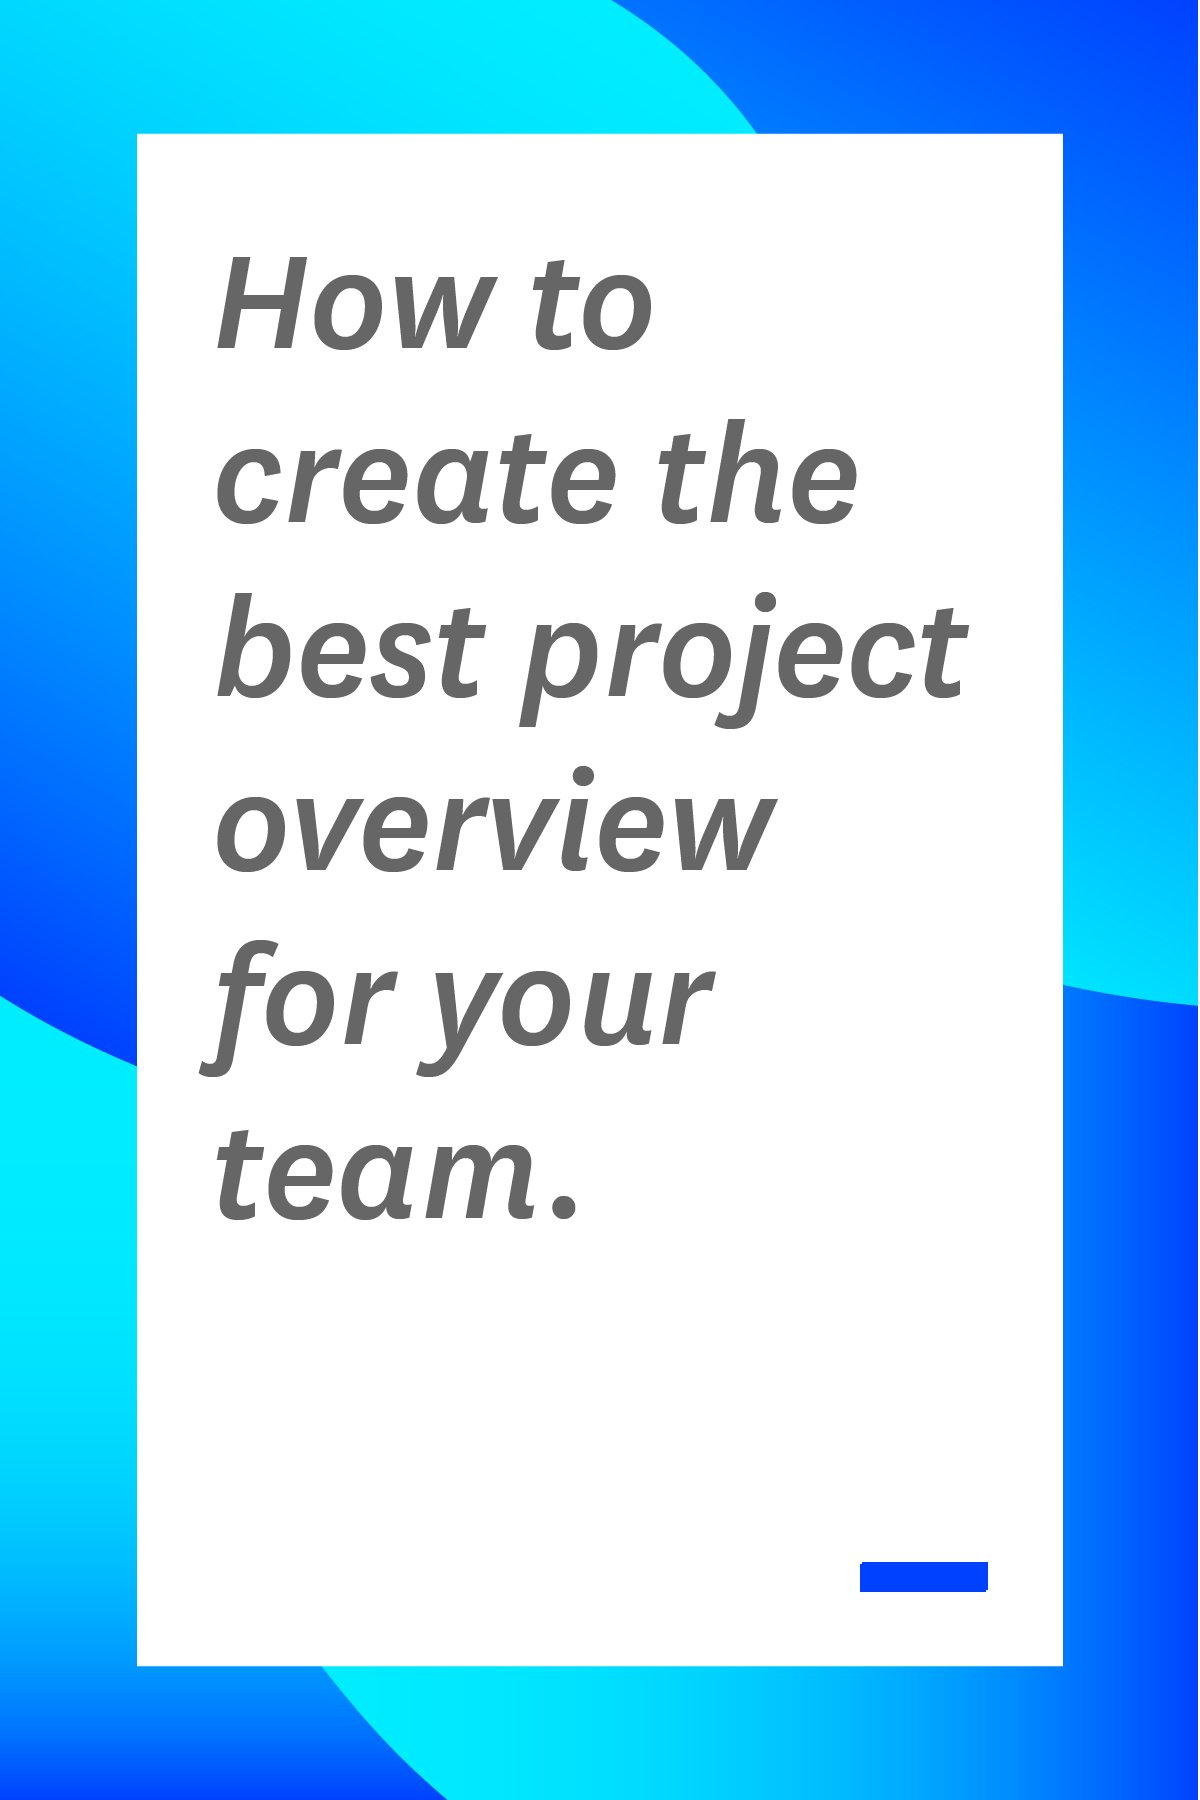 A project overview, sometimes referred to as a project summary, is a tool that allows you to plan out all the details of the project. Here's how to create a super effective project overview for your team.